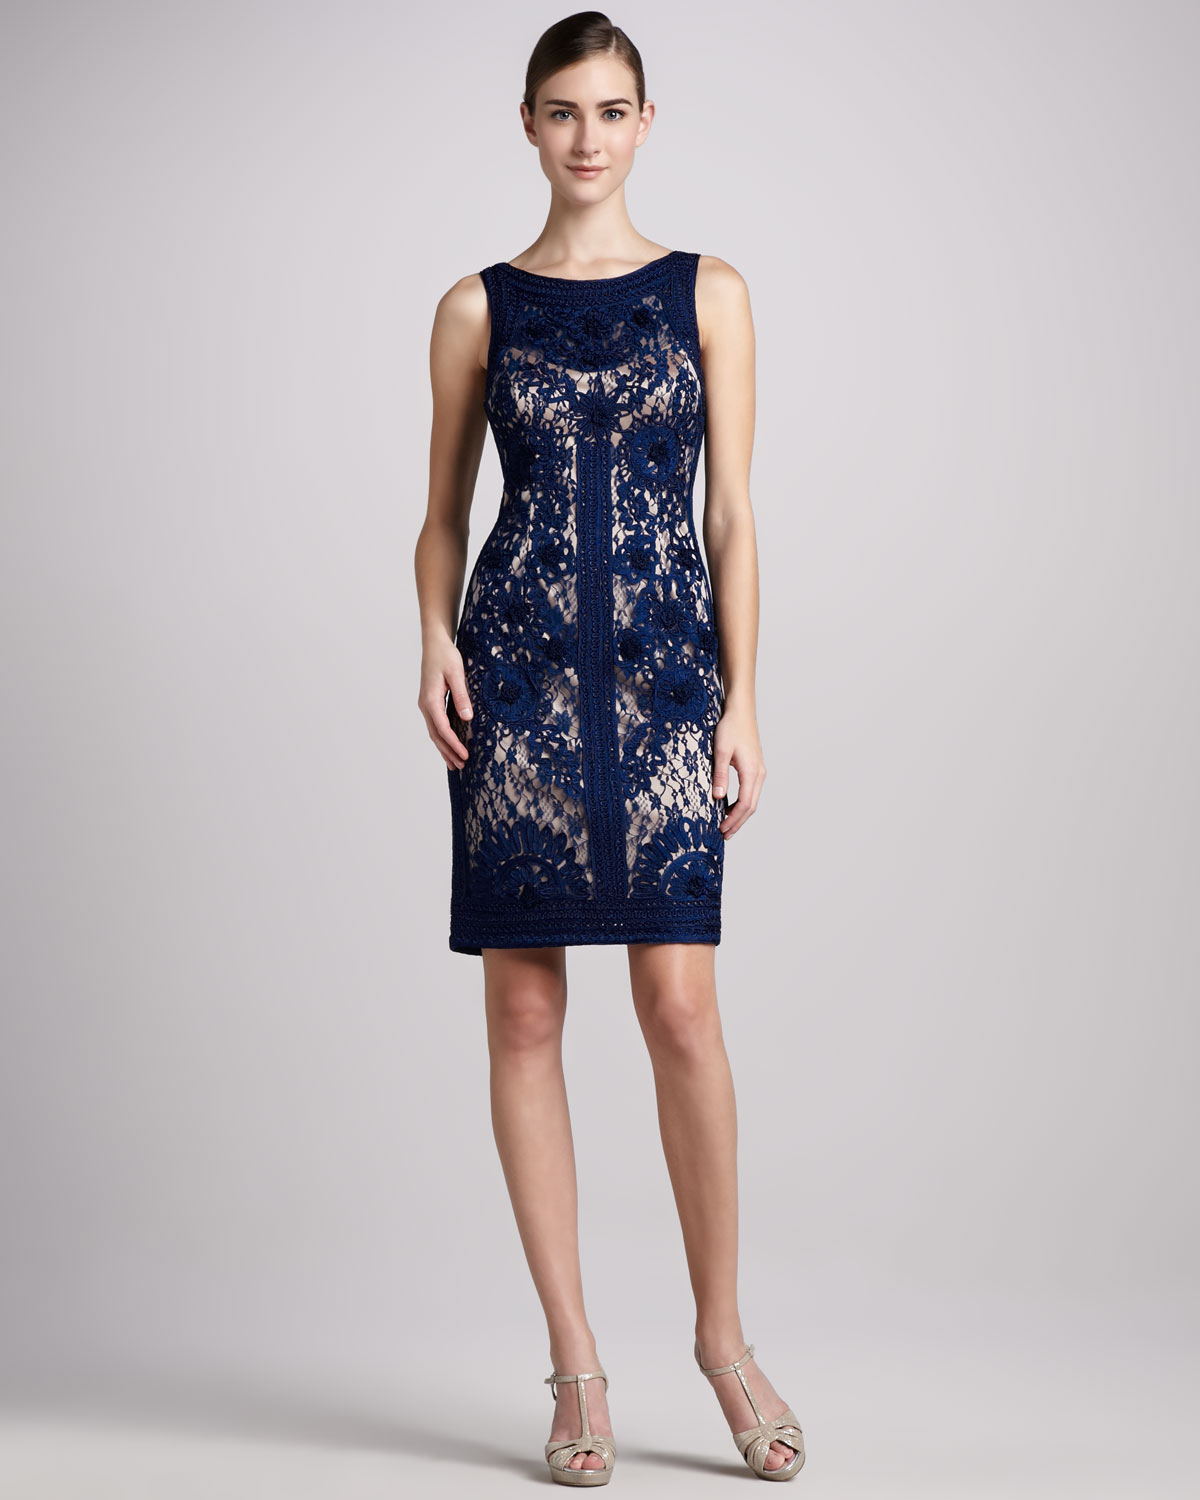 Sue wong Sleeveless Lace Cocktail Dress in Blue | Lyst